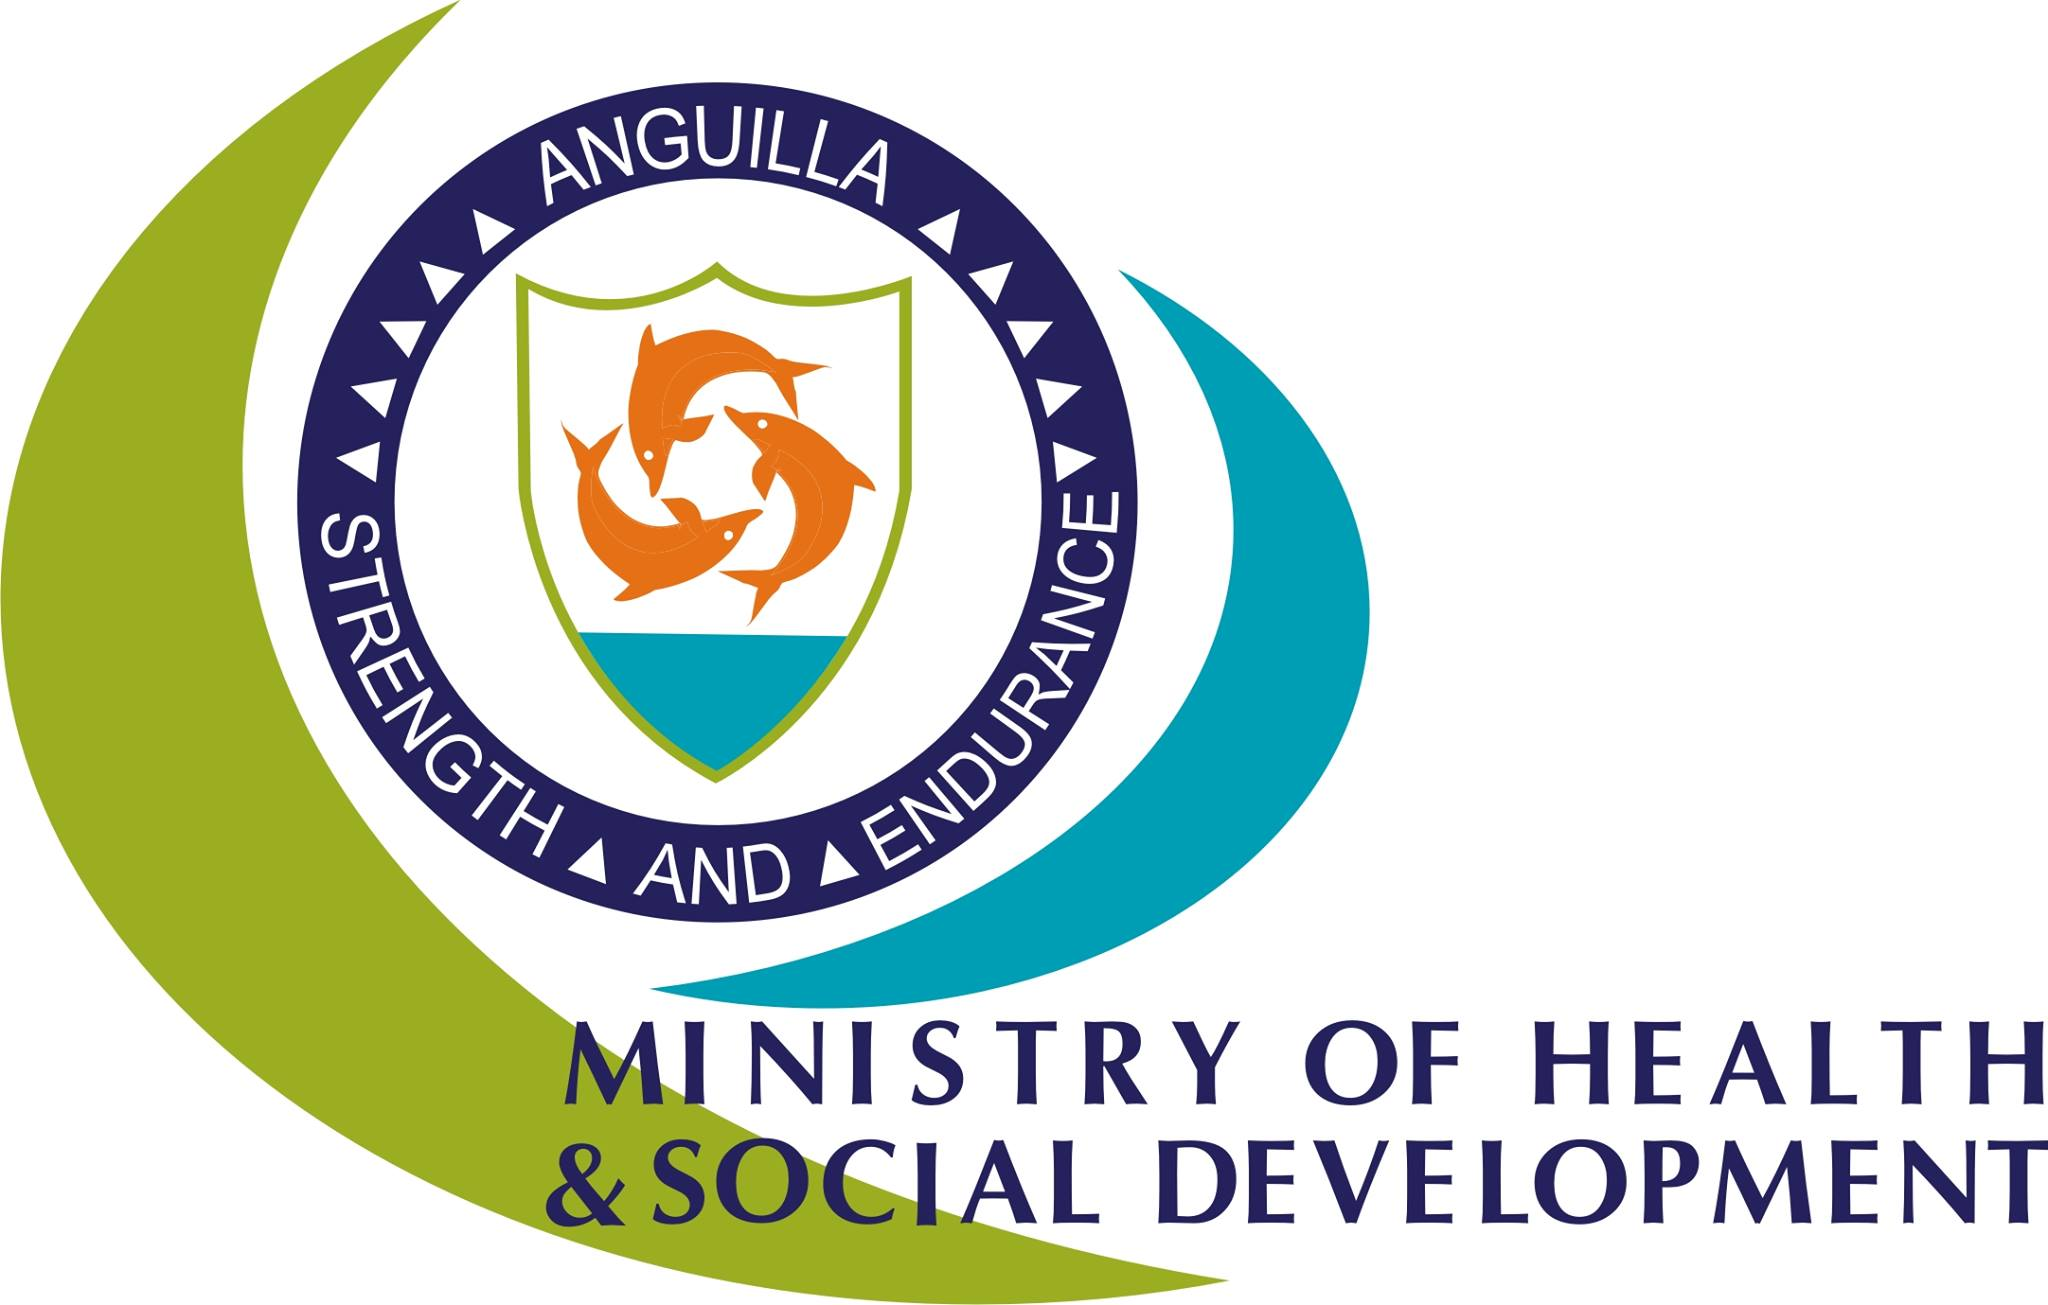 ministry of health & social development logo